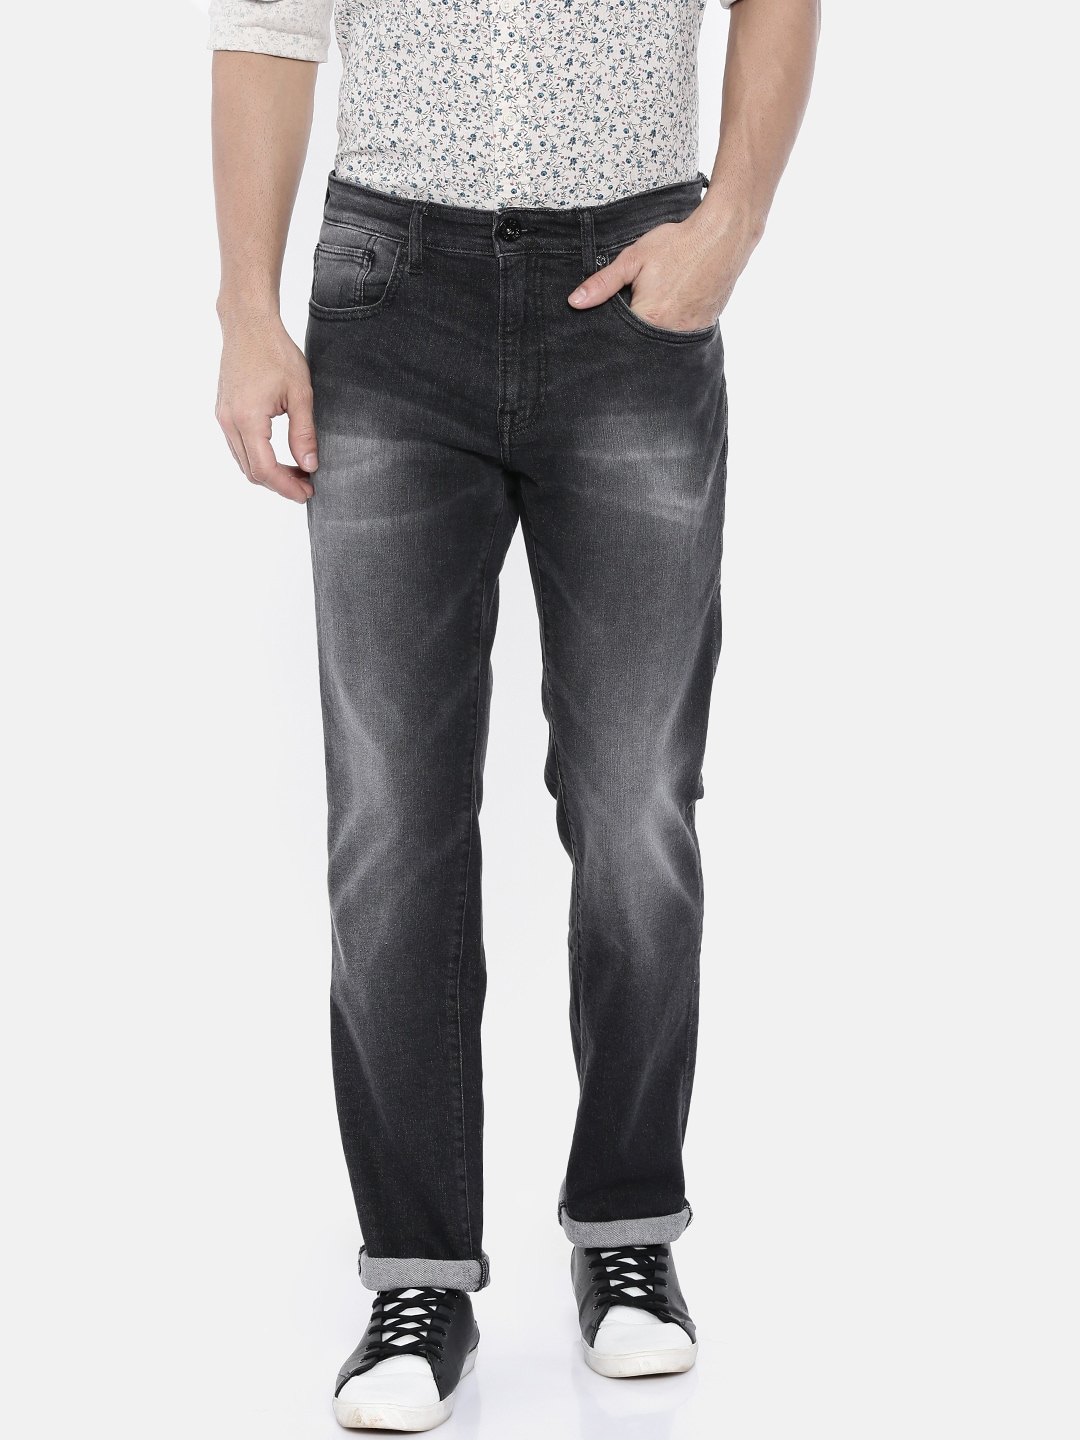 Pepe Jeans - Buy Pepe Jeans Clothing Online in India  78dd3950eb90e